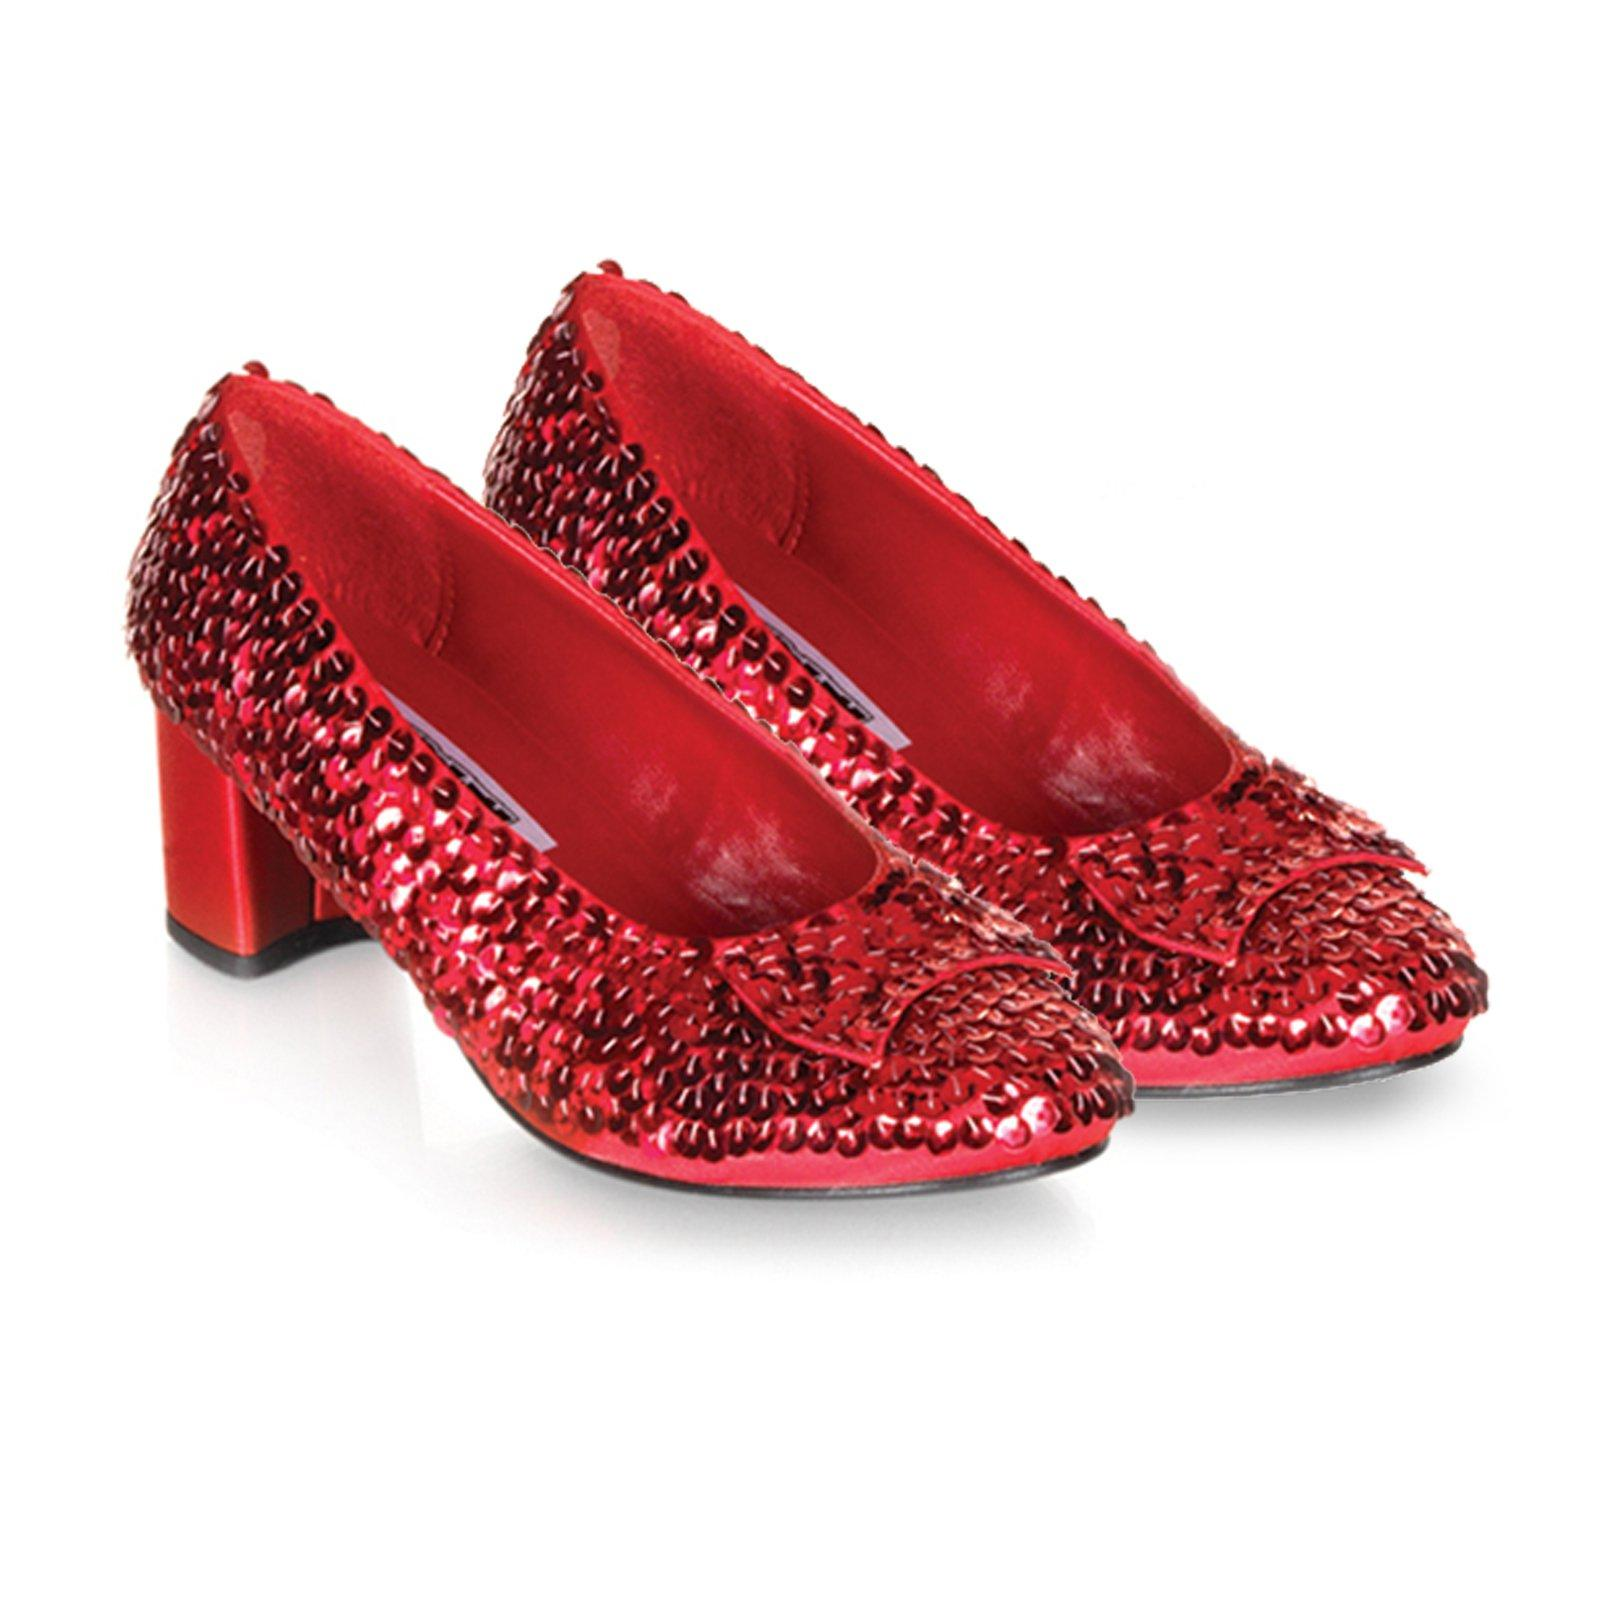 Pleaser - Judy Red Sequin Shoes Girls  Child Costume Accessory - Walmart.com 7a329ef13b0a